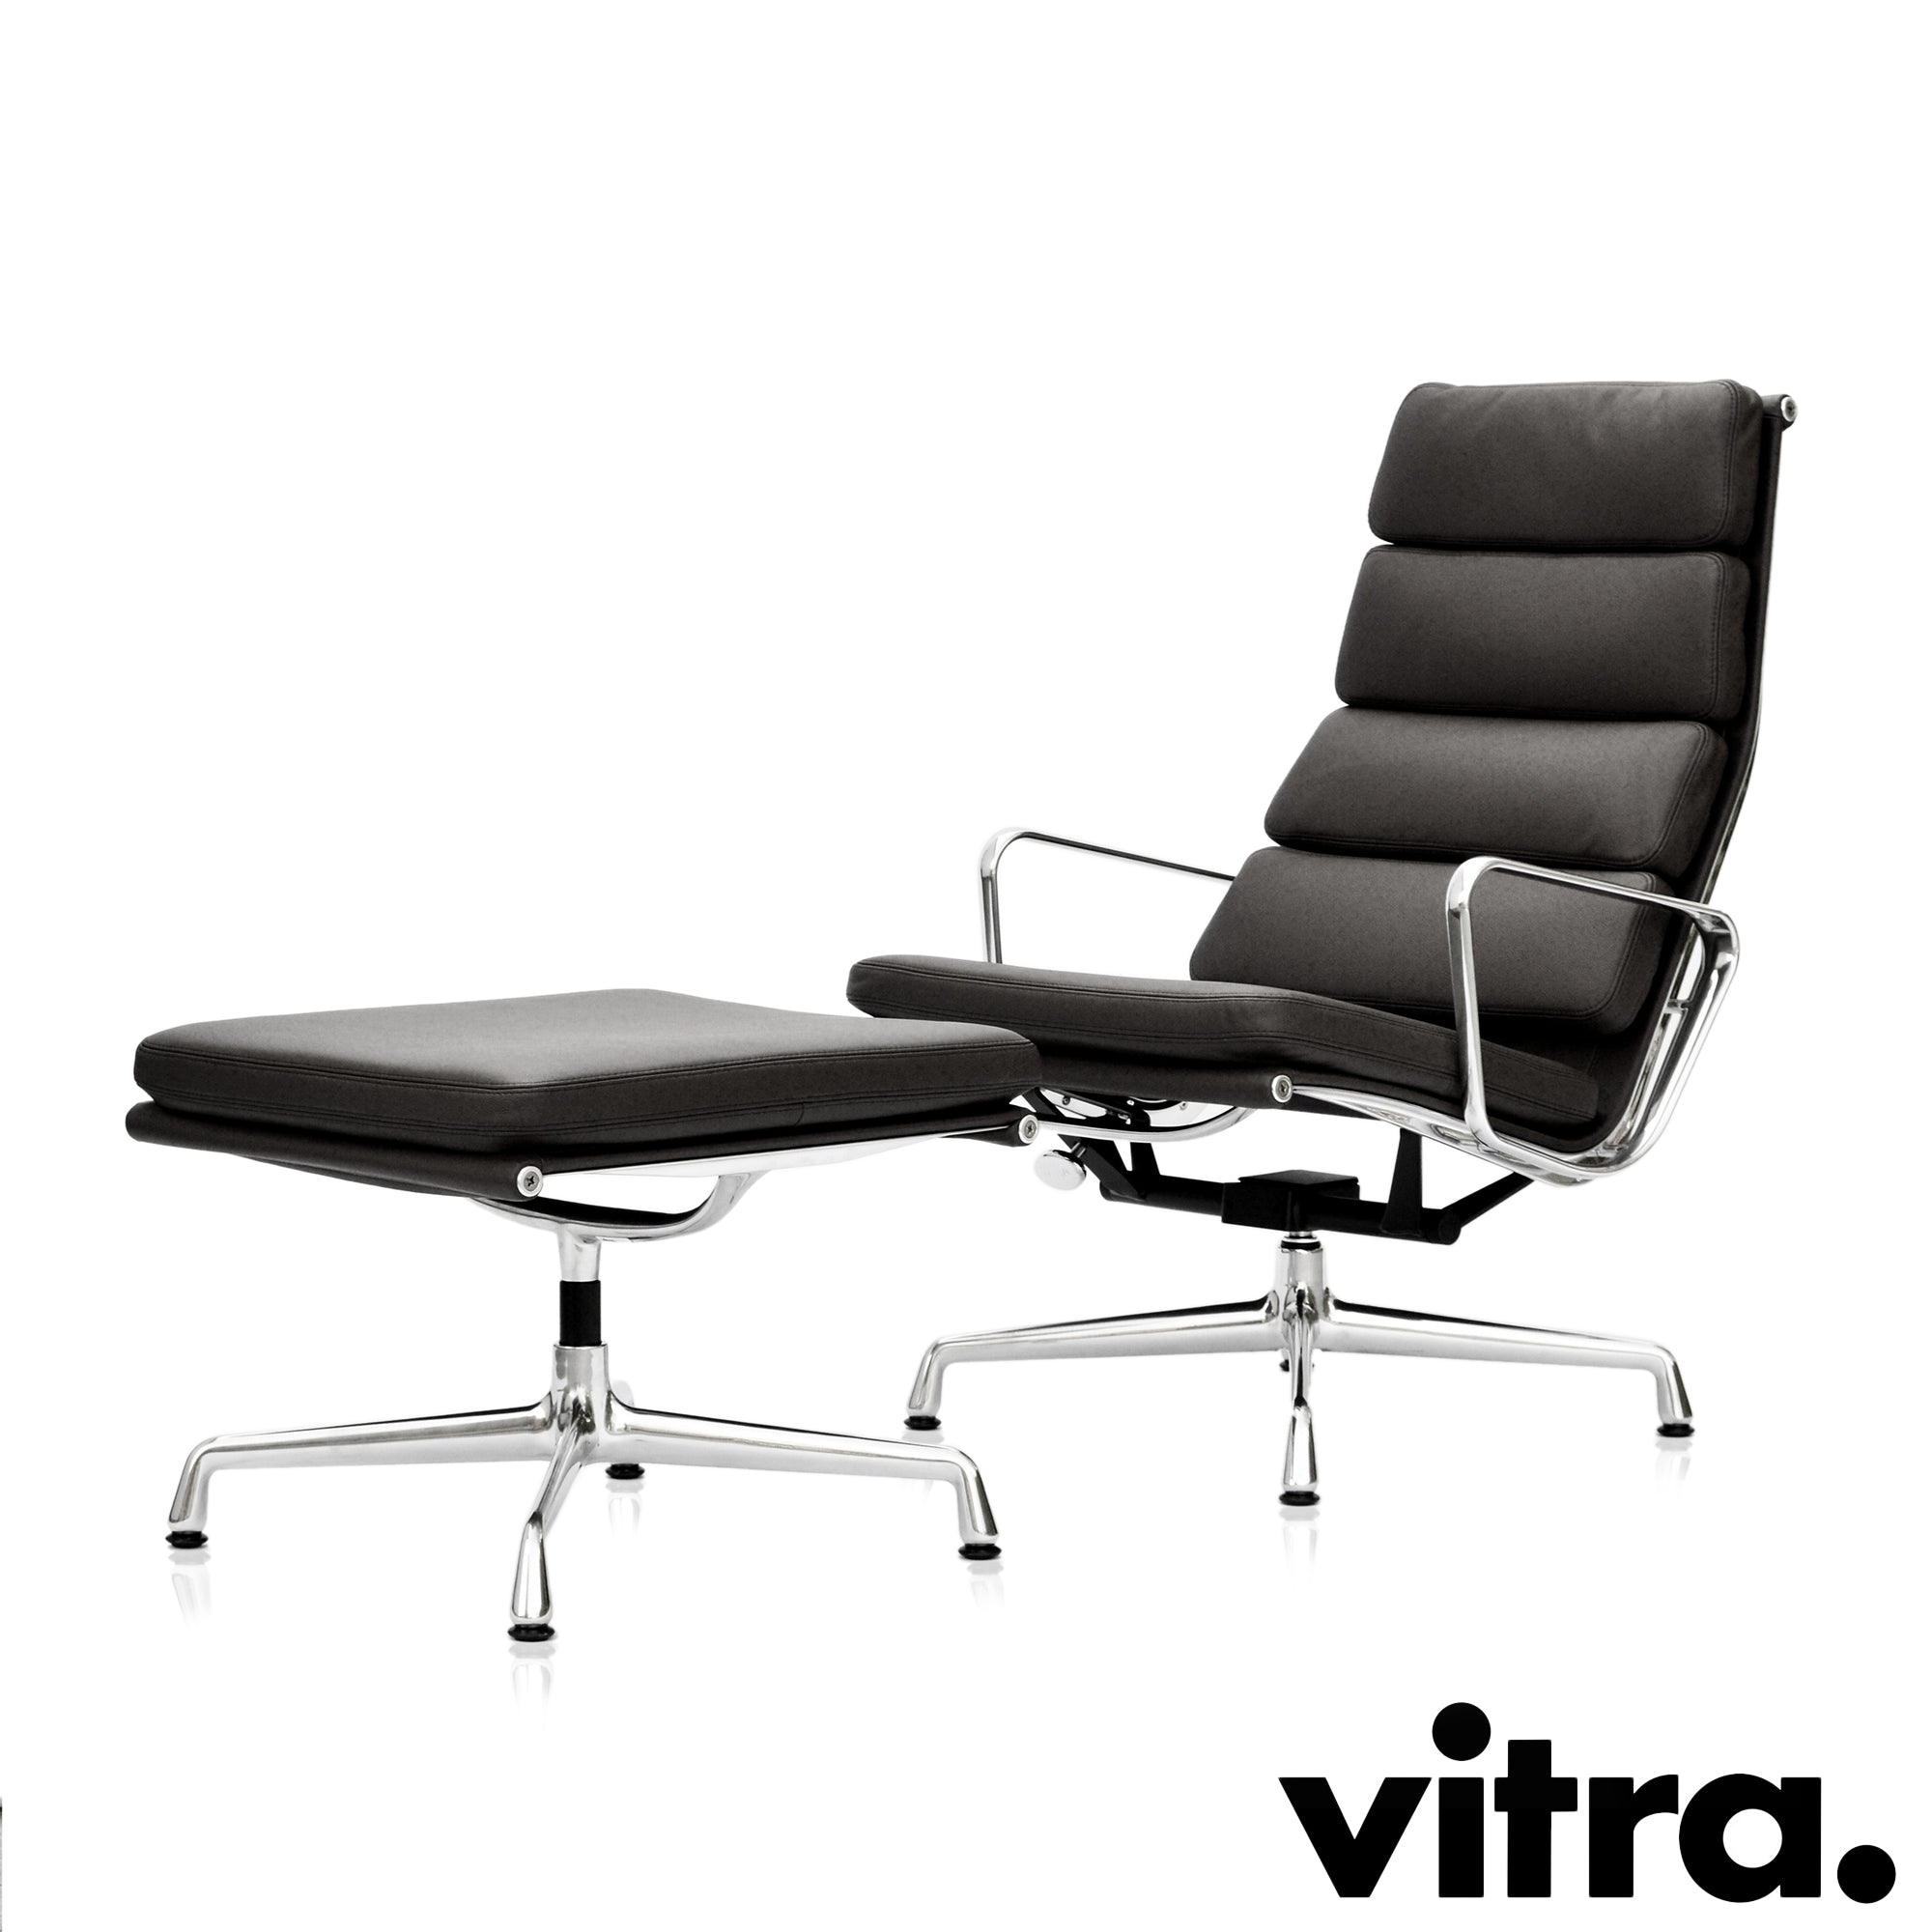 Vitra - Eames Soft Pad Chair EA 222 + Stool EA 223 - Set Angebot